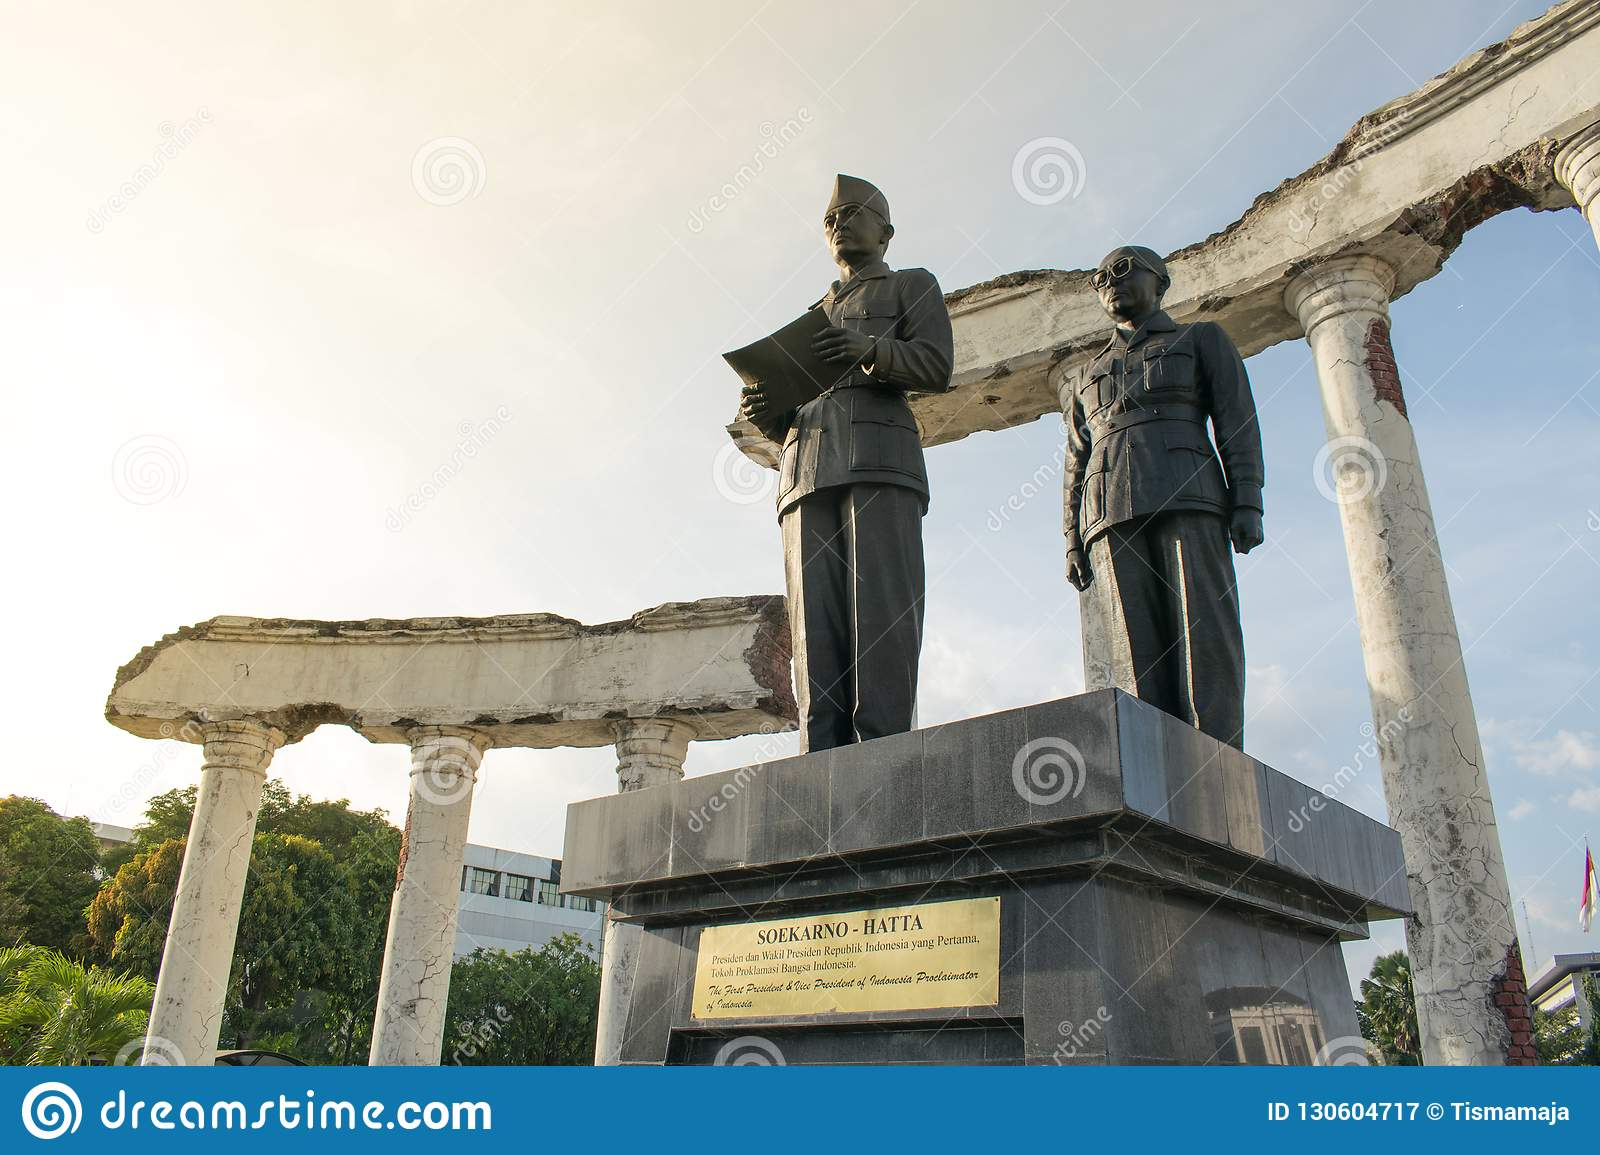 Surabaya, Indonesia - October 2018: monument to Sukarno, the former president of Indonesia